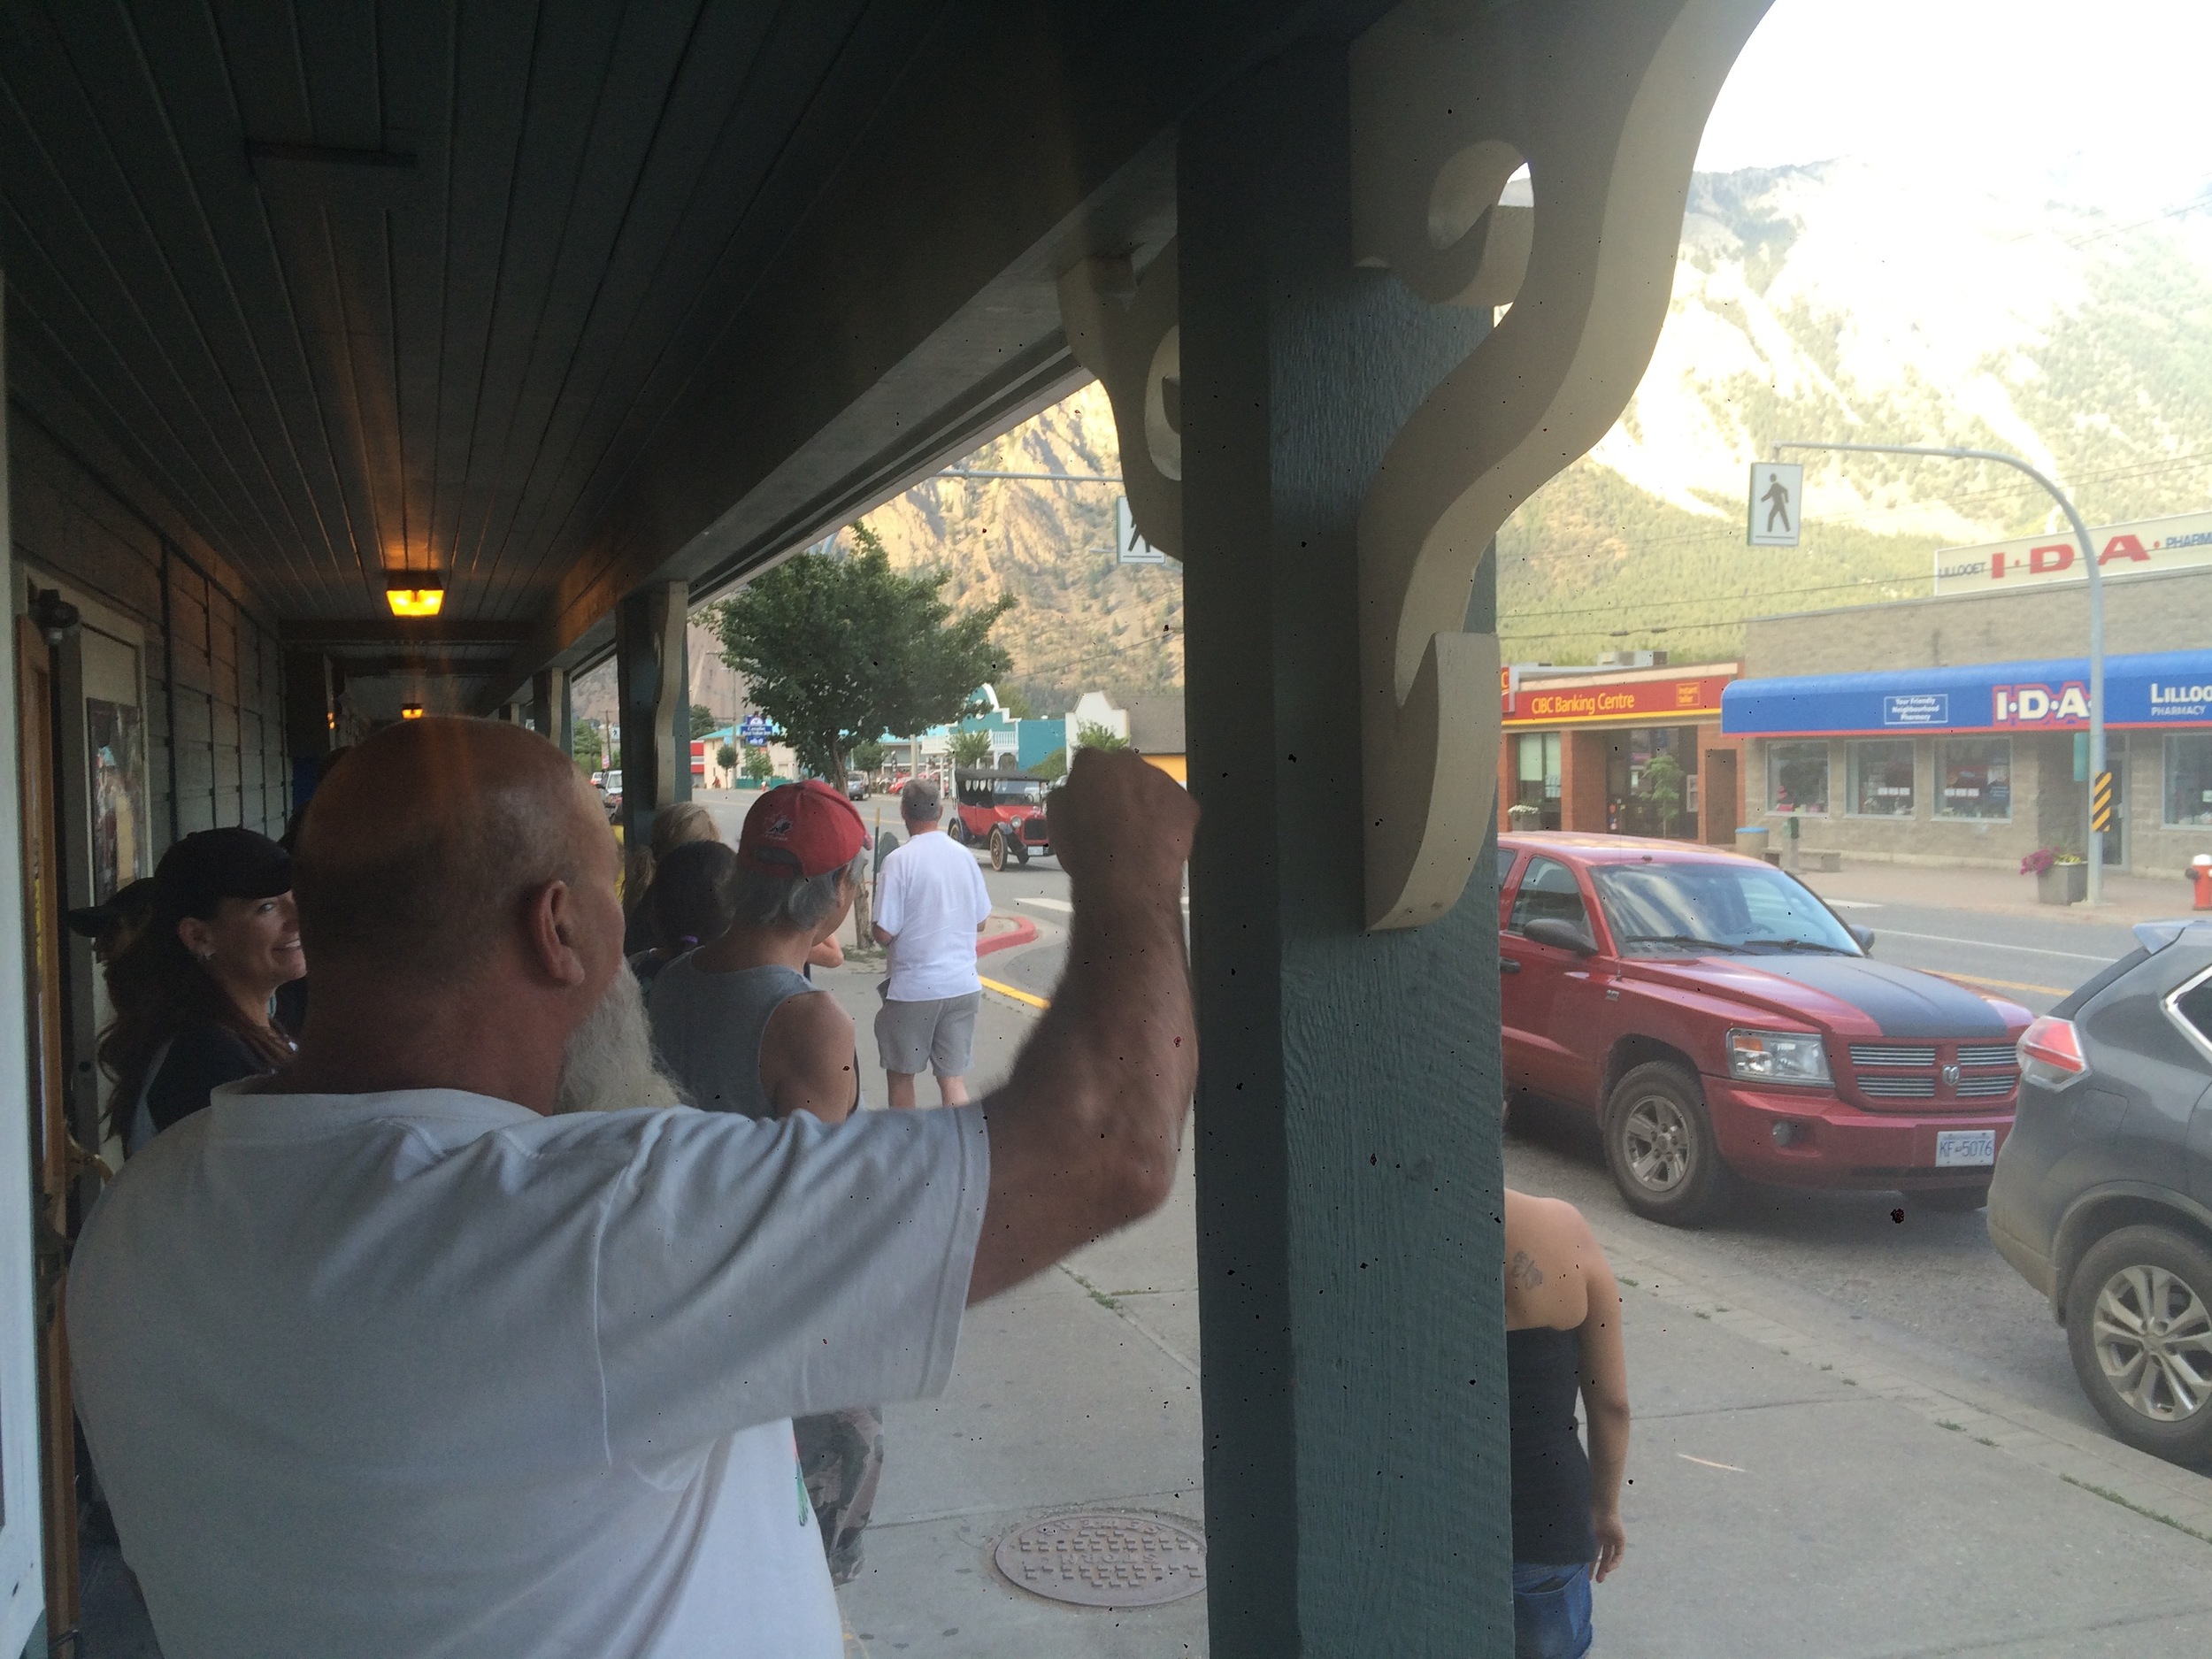 Lillooet, the pub briefly empties in anticipation of a car show